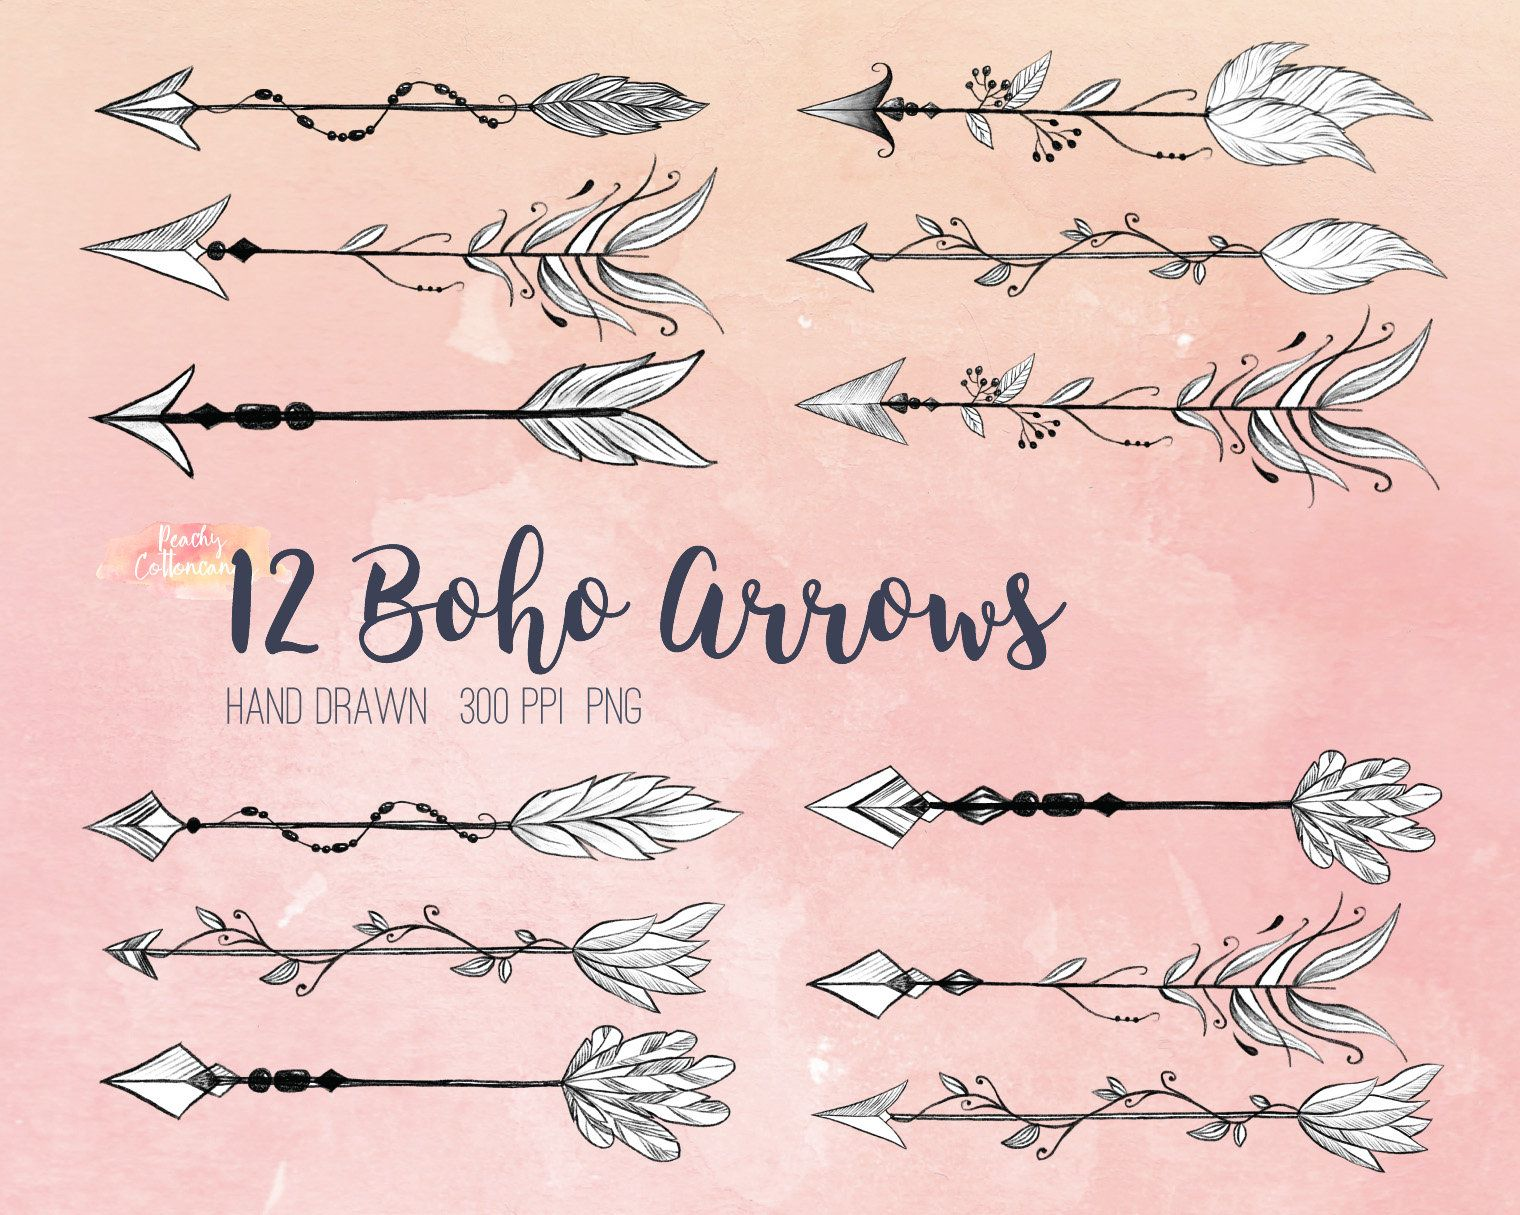 Buy 3 Get 30 Off Hand Drawn Boho Arrows Clipart Tribal Arrow Clipart Bohemian Arrow Clip Art Tribal Arrows Clip Art Native Arrow Arrow Tattoos For Women How To Draw Hands Arrow Clipart